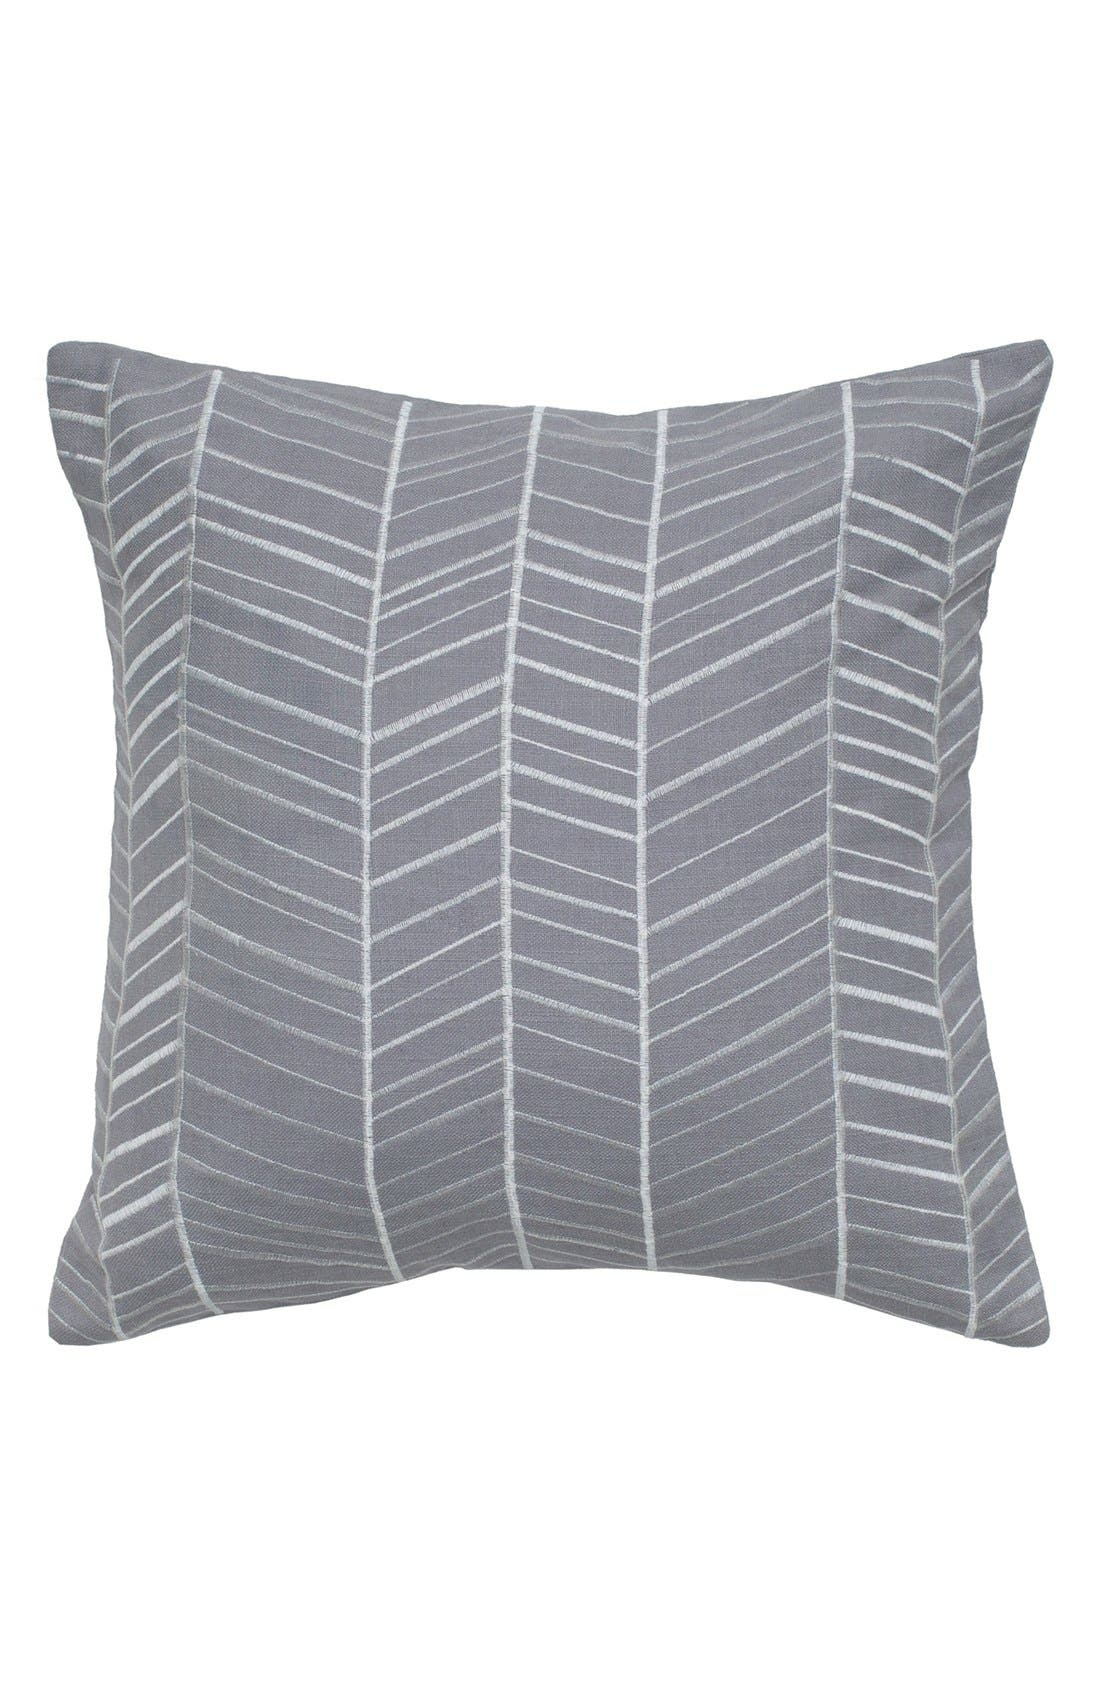 Chevron Pillow,                         Main,                         color, 050